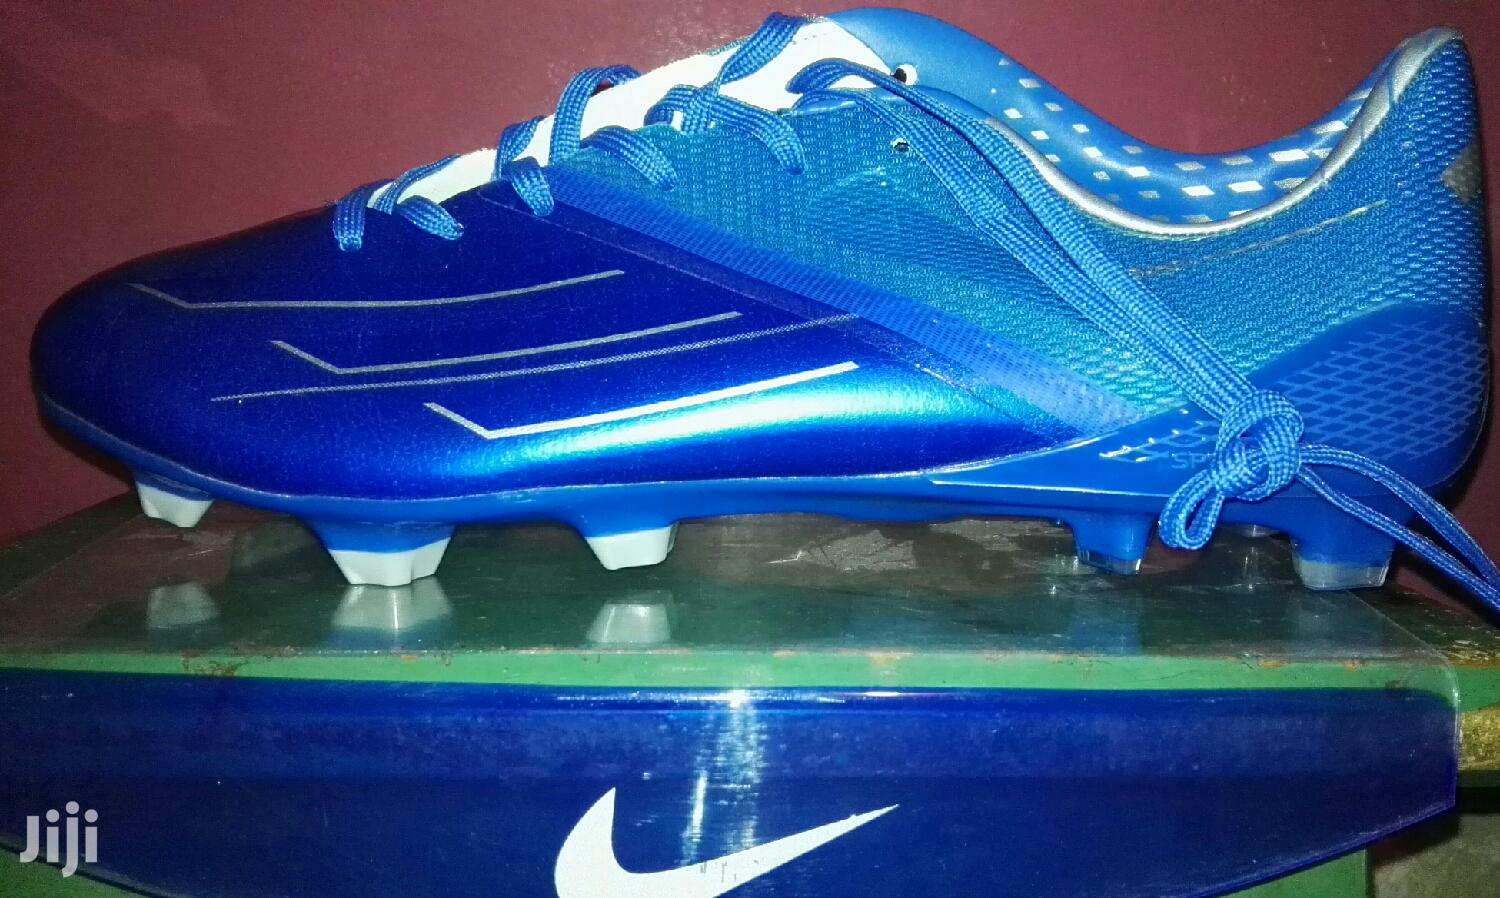 Brand New Soccer Boots   Shoes for sale in Likoni, Mombasa, Kenya